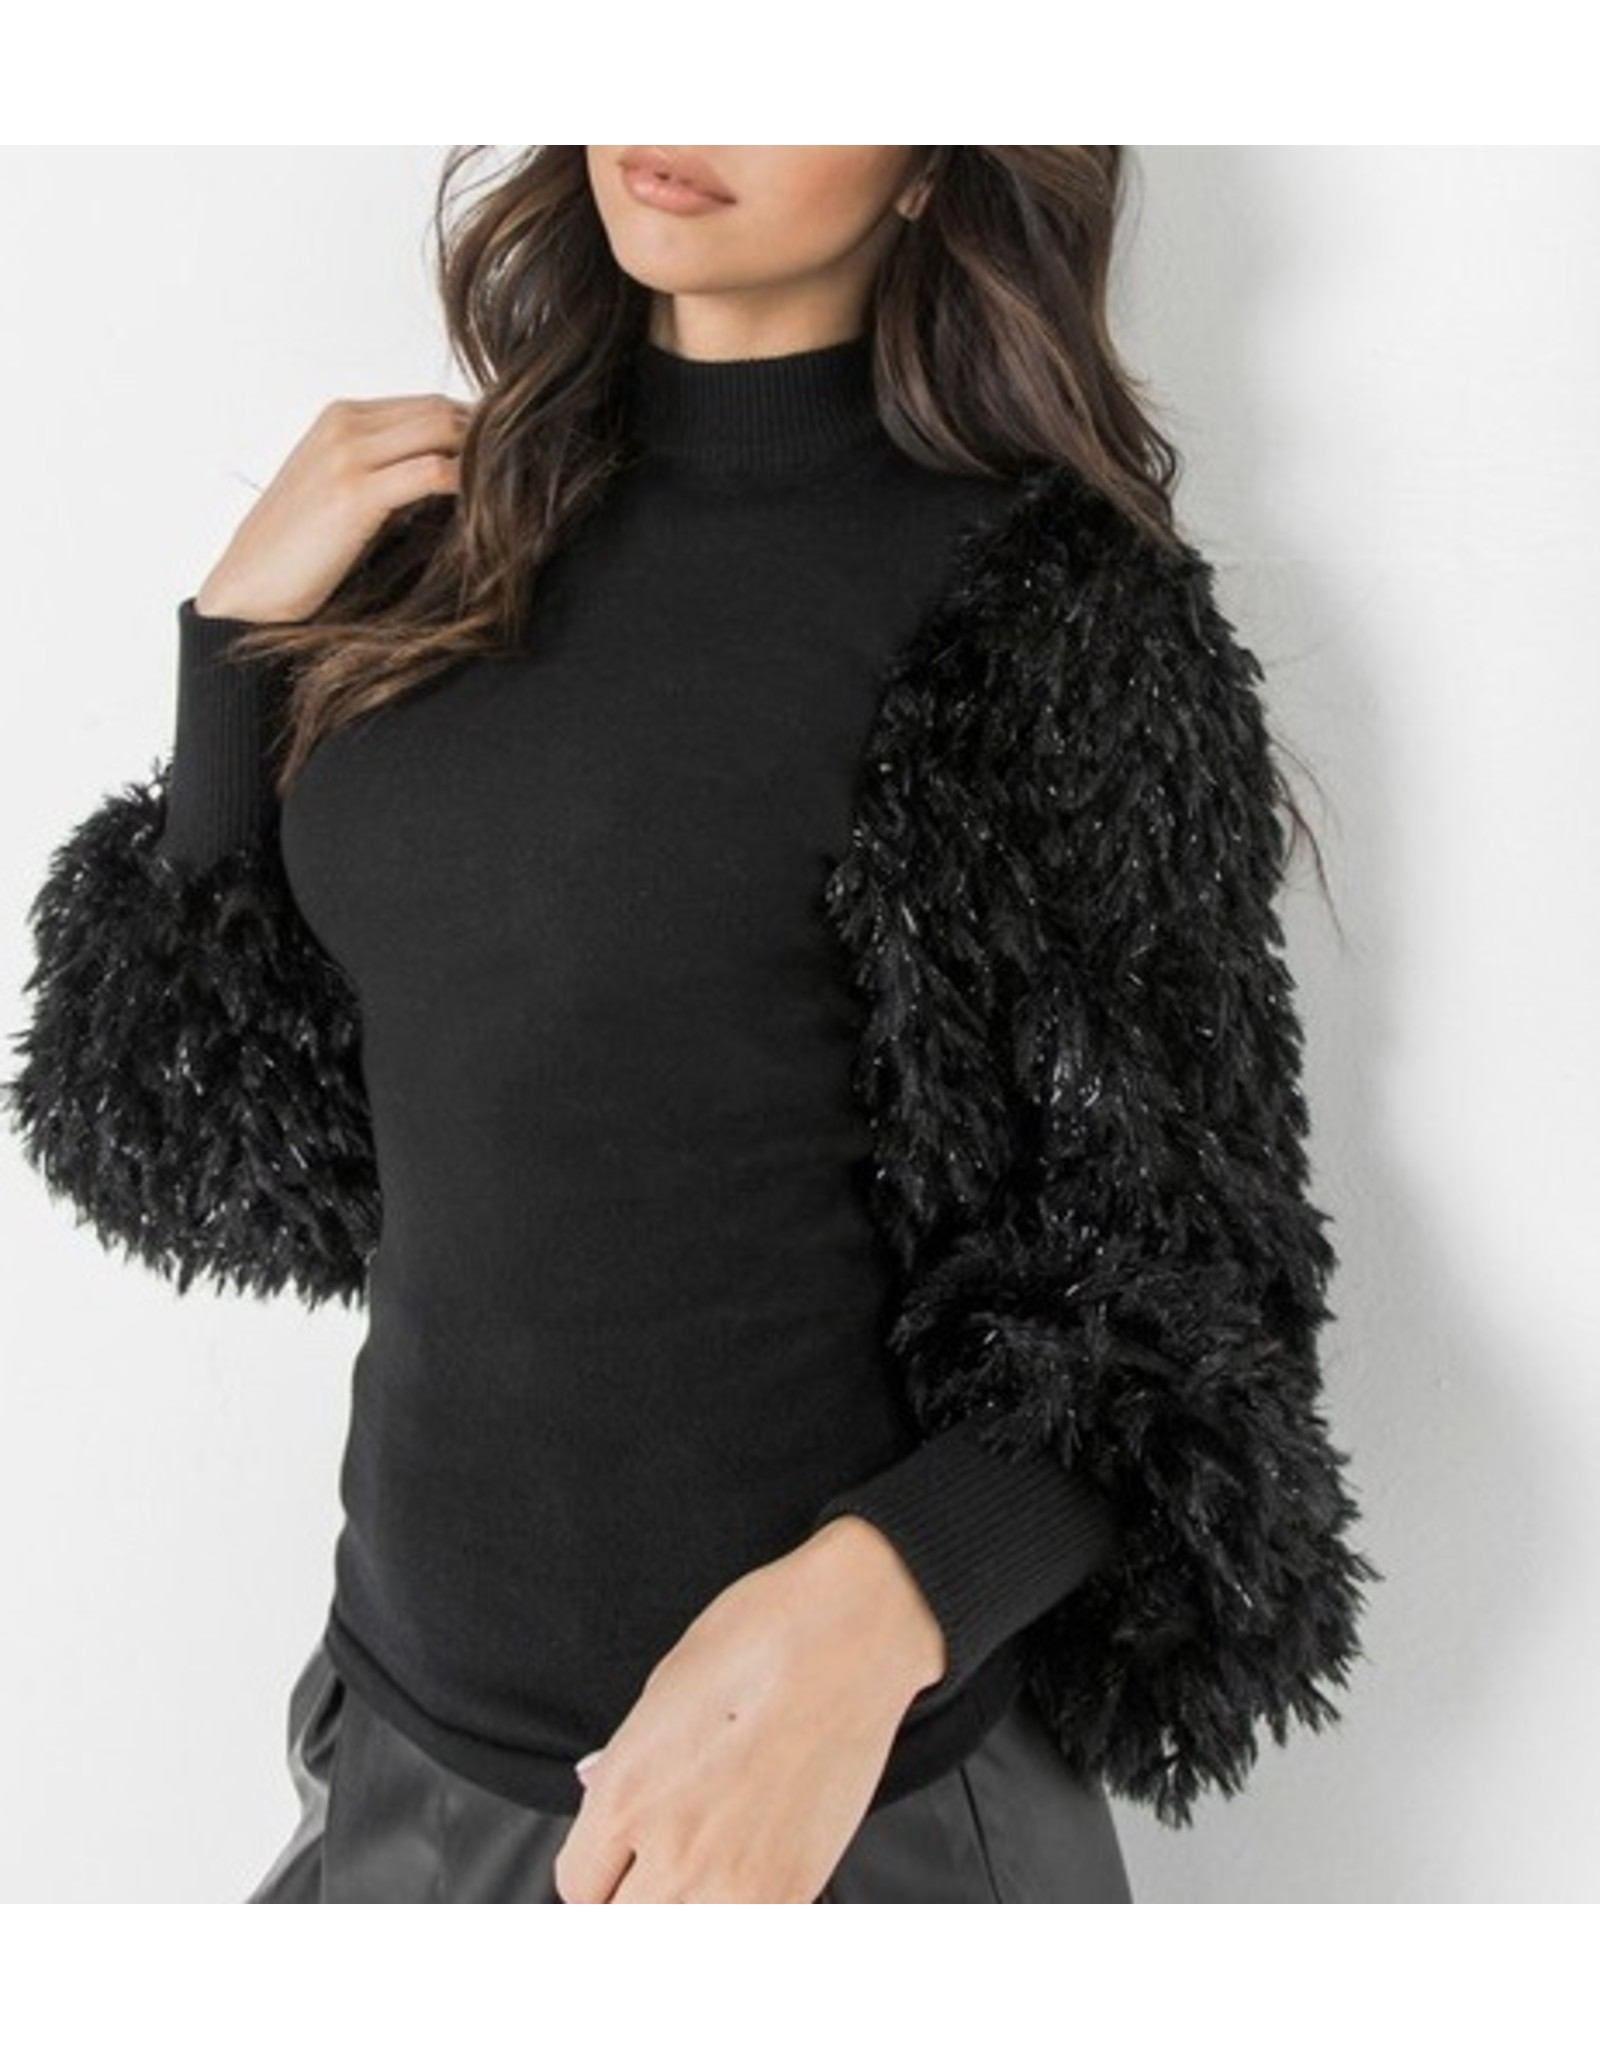 Shaggy Sleeves Sweater Top - Black